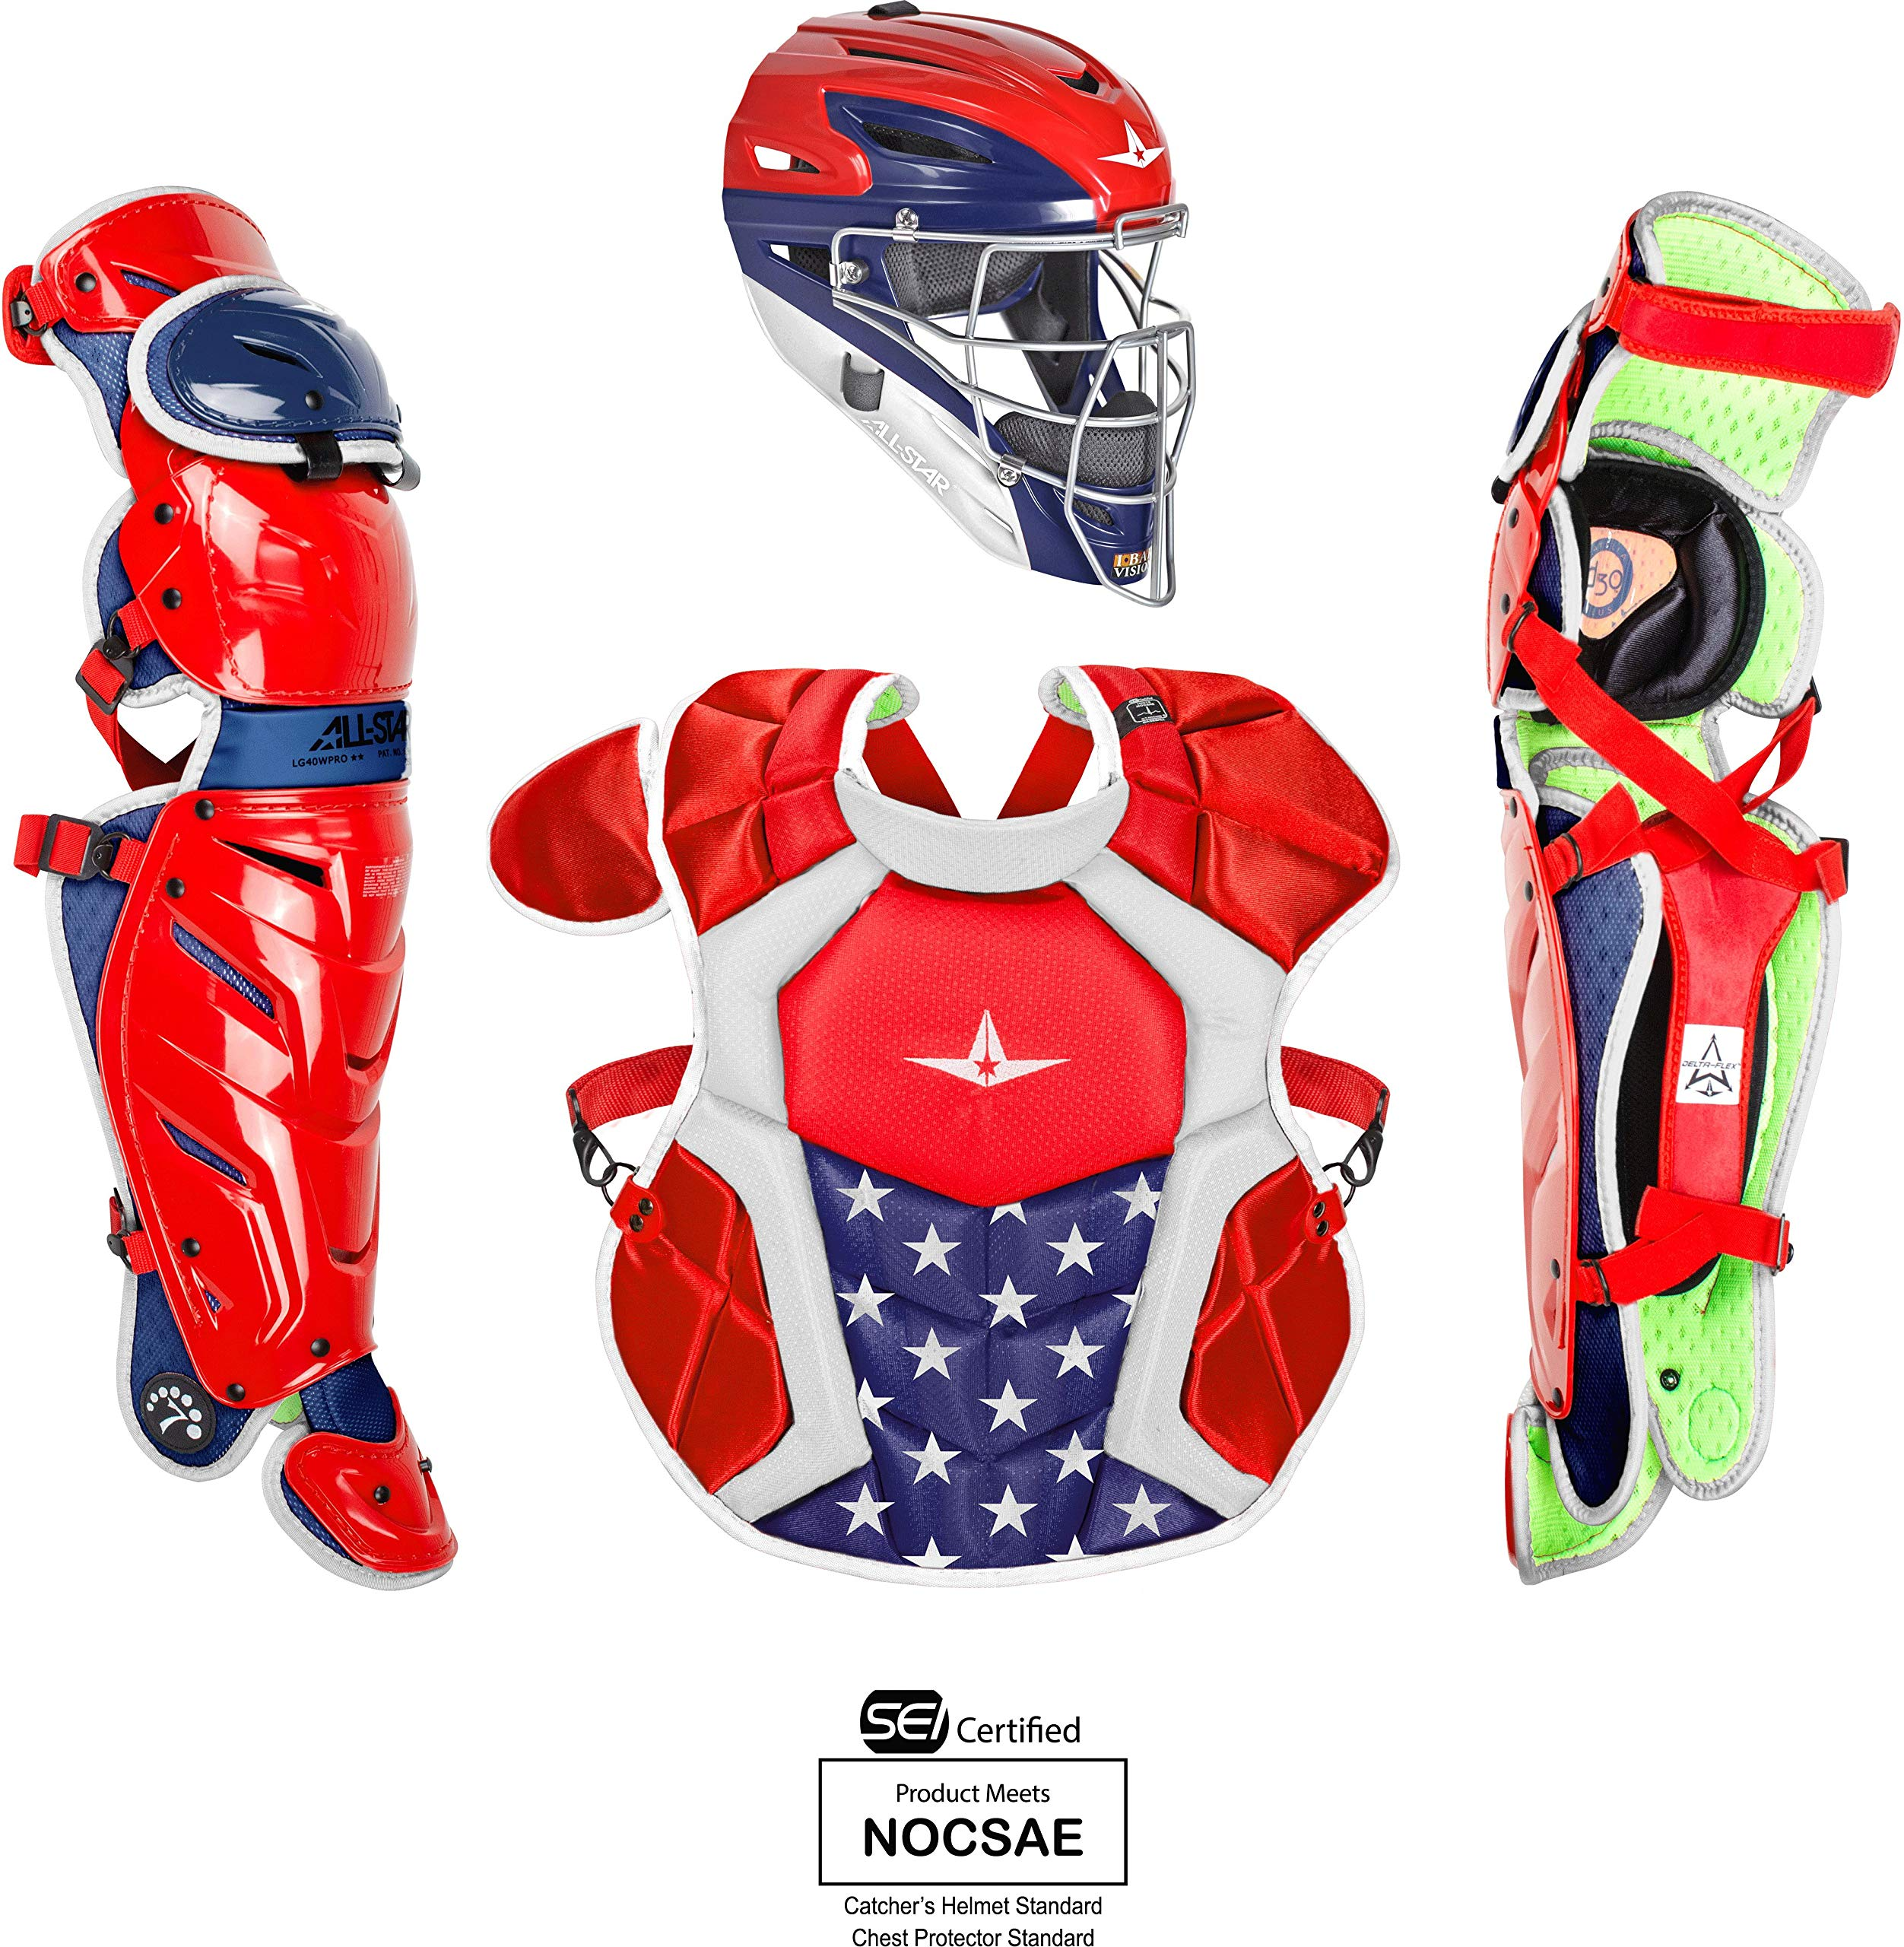 All-Star System7 Axis USA Pro Intermediate Catchers Set Red/White/Blue